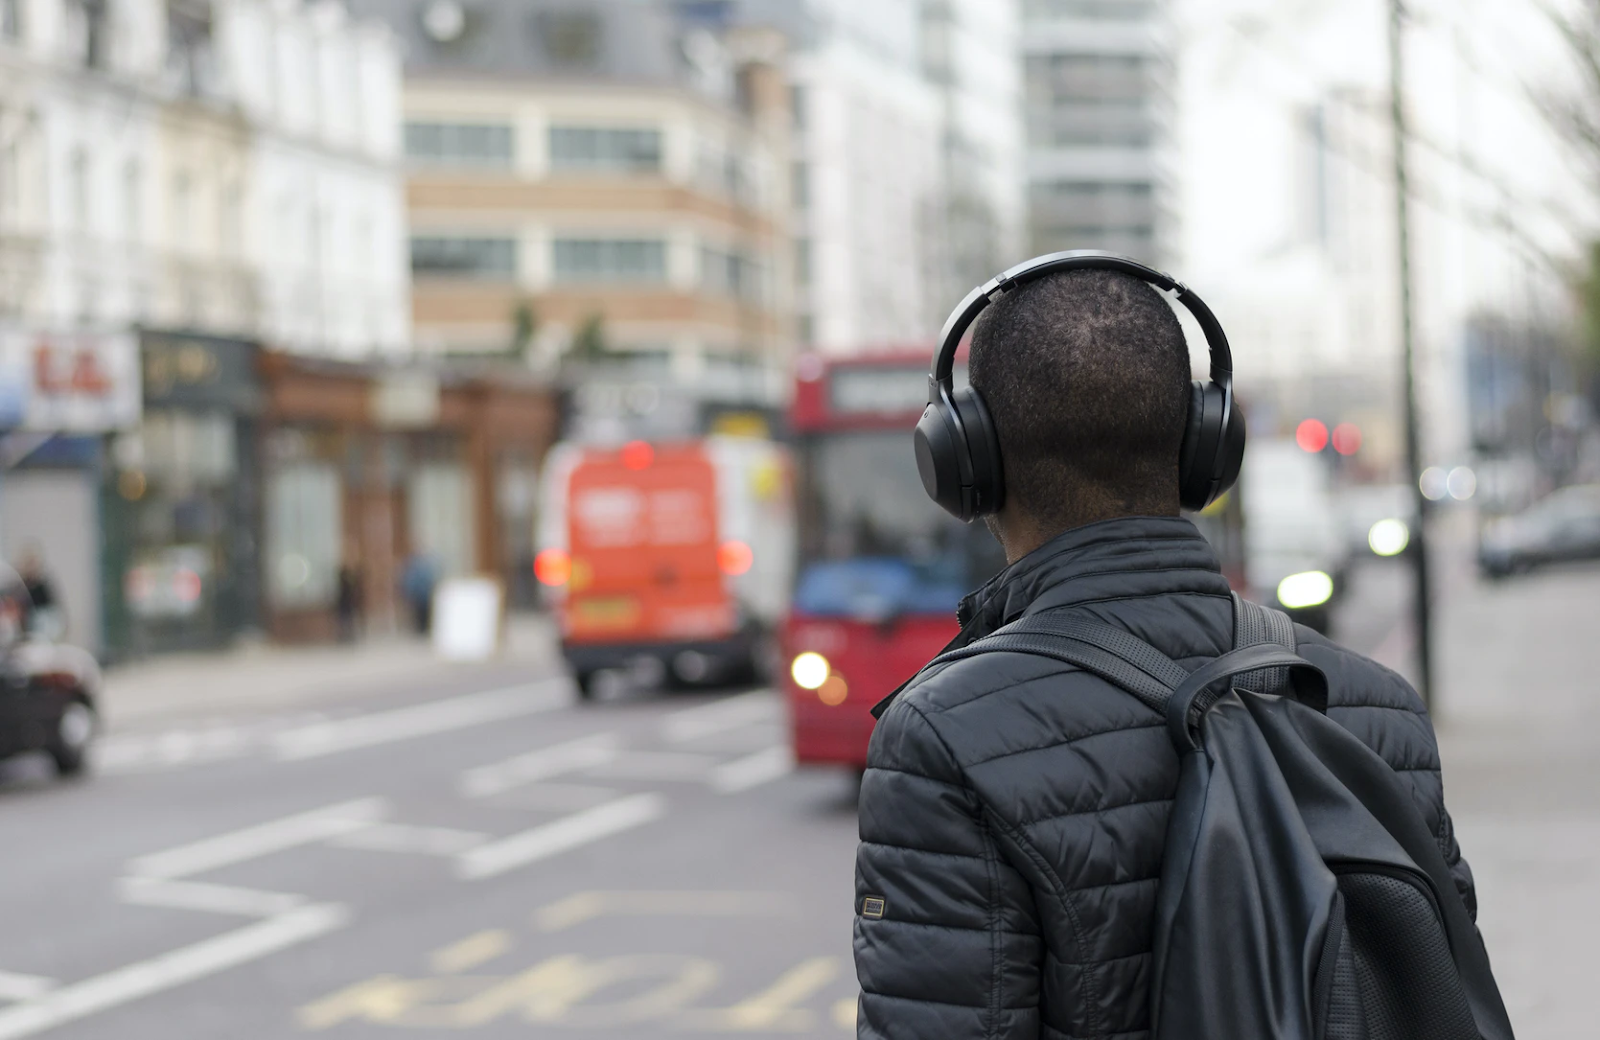 Are Noise-Canceling Headphones Worth It?